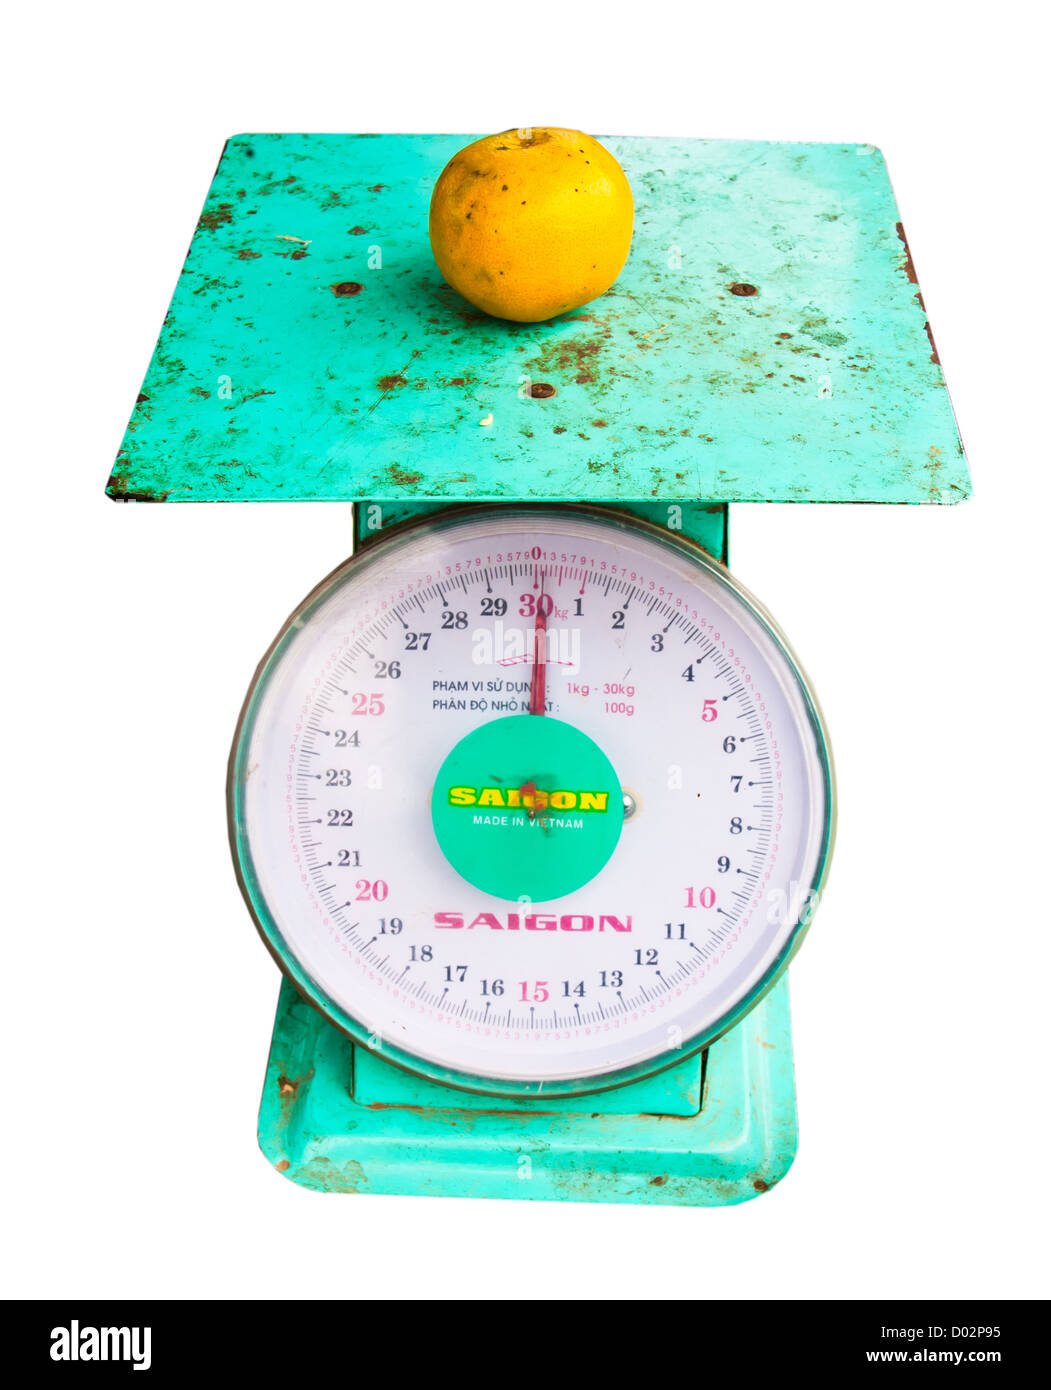 weighing machine, and citrus fruits were placed on top. - Stock Image